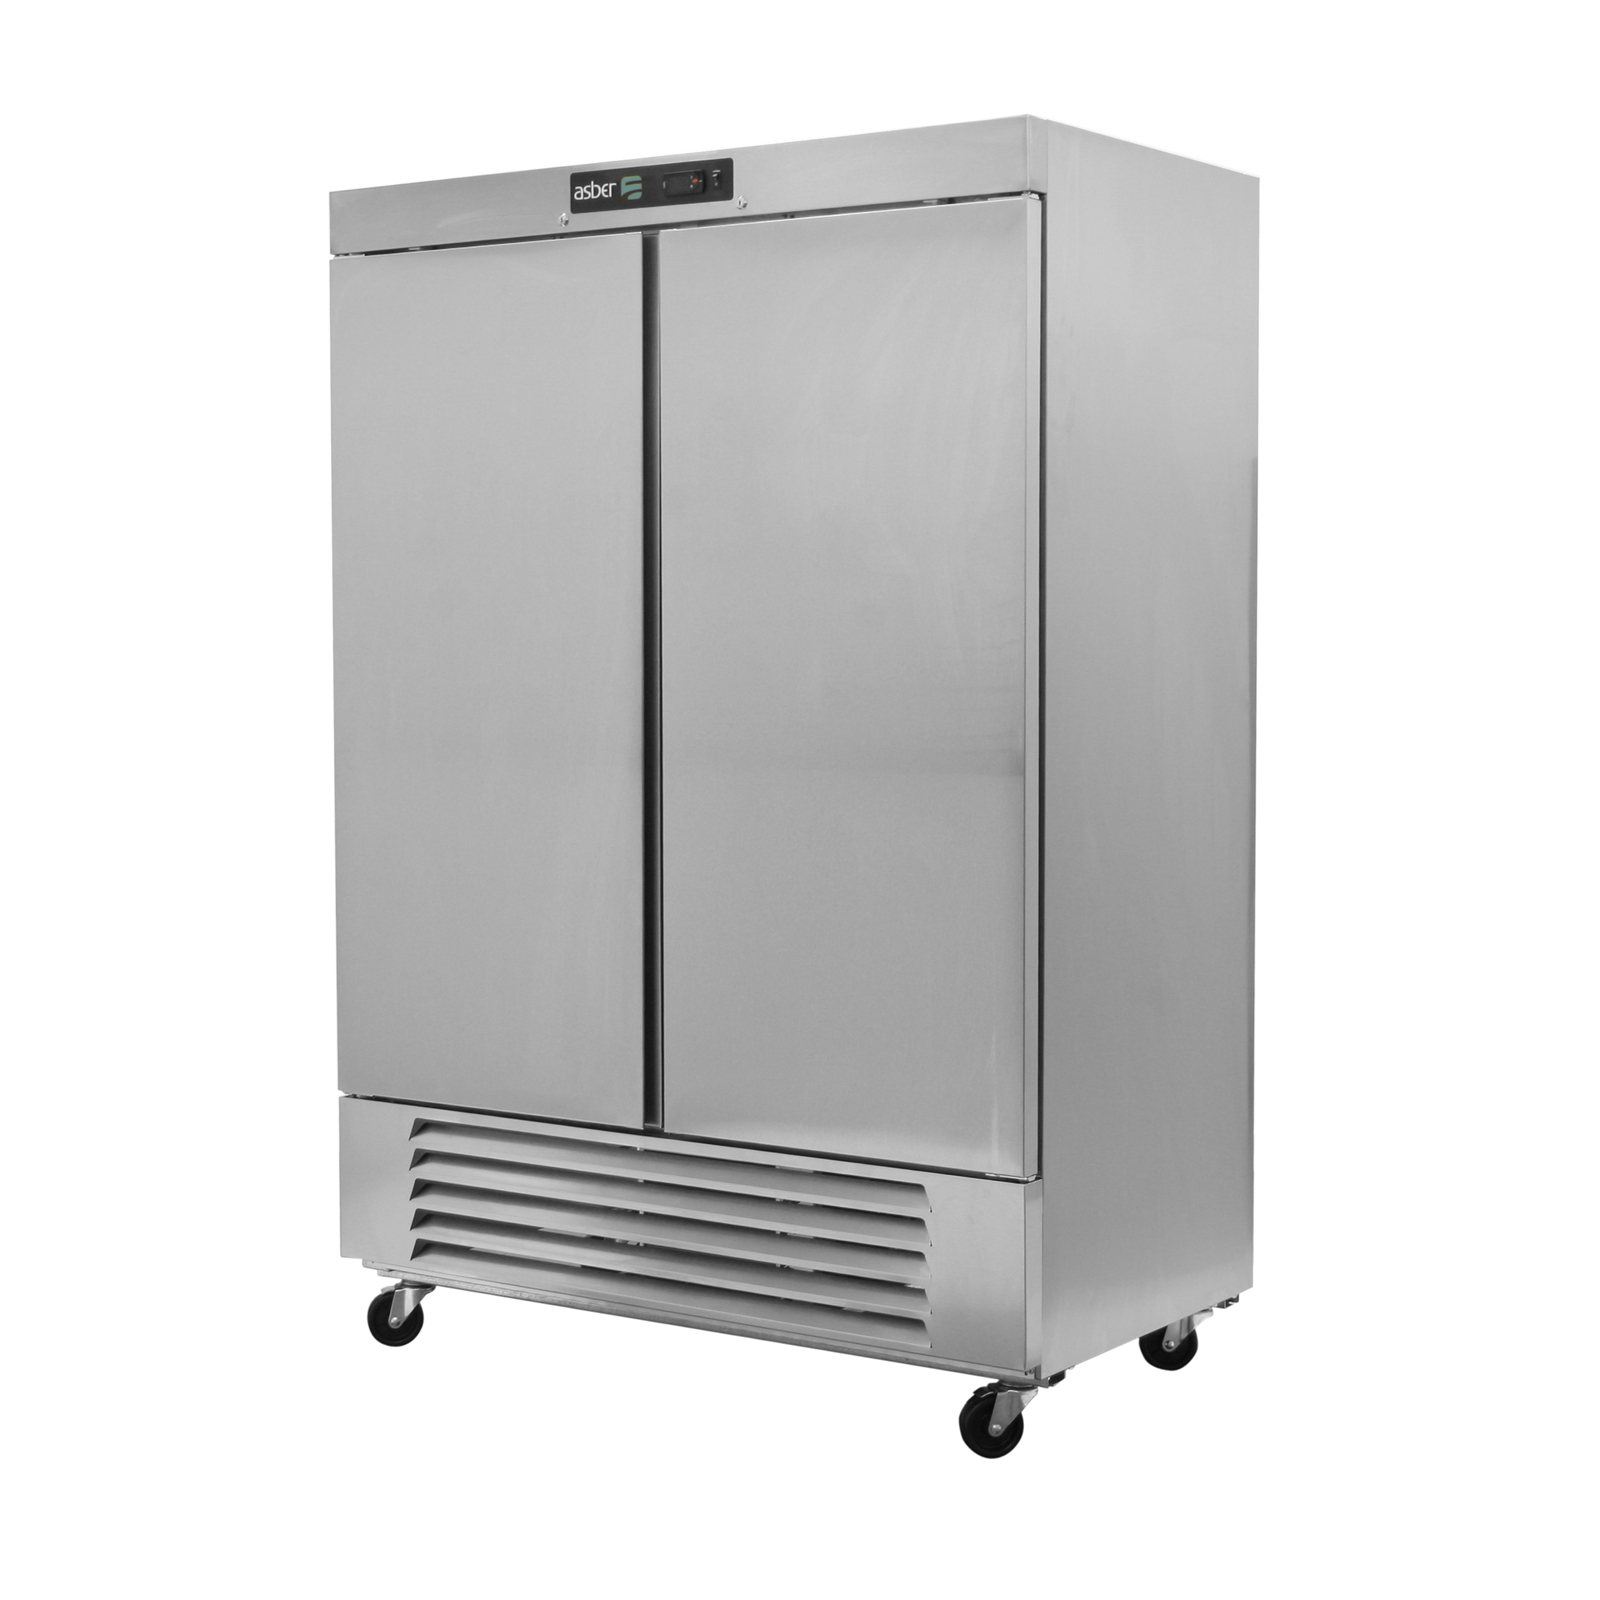 Asber ARF-49-H freezer, reach-in